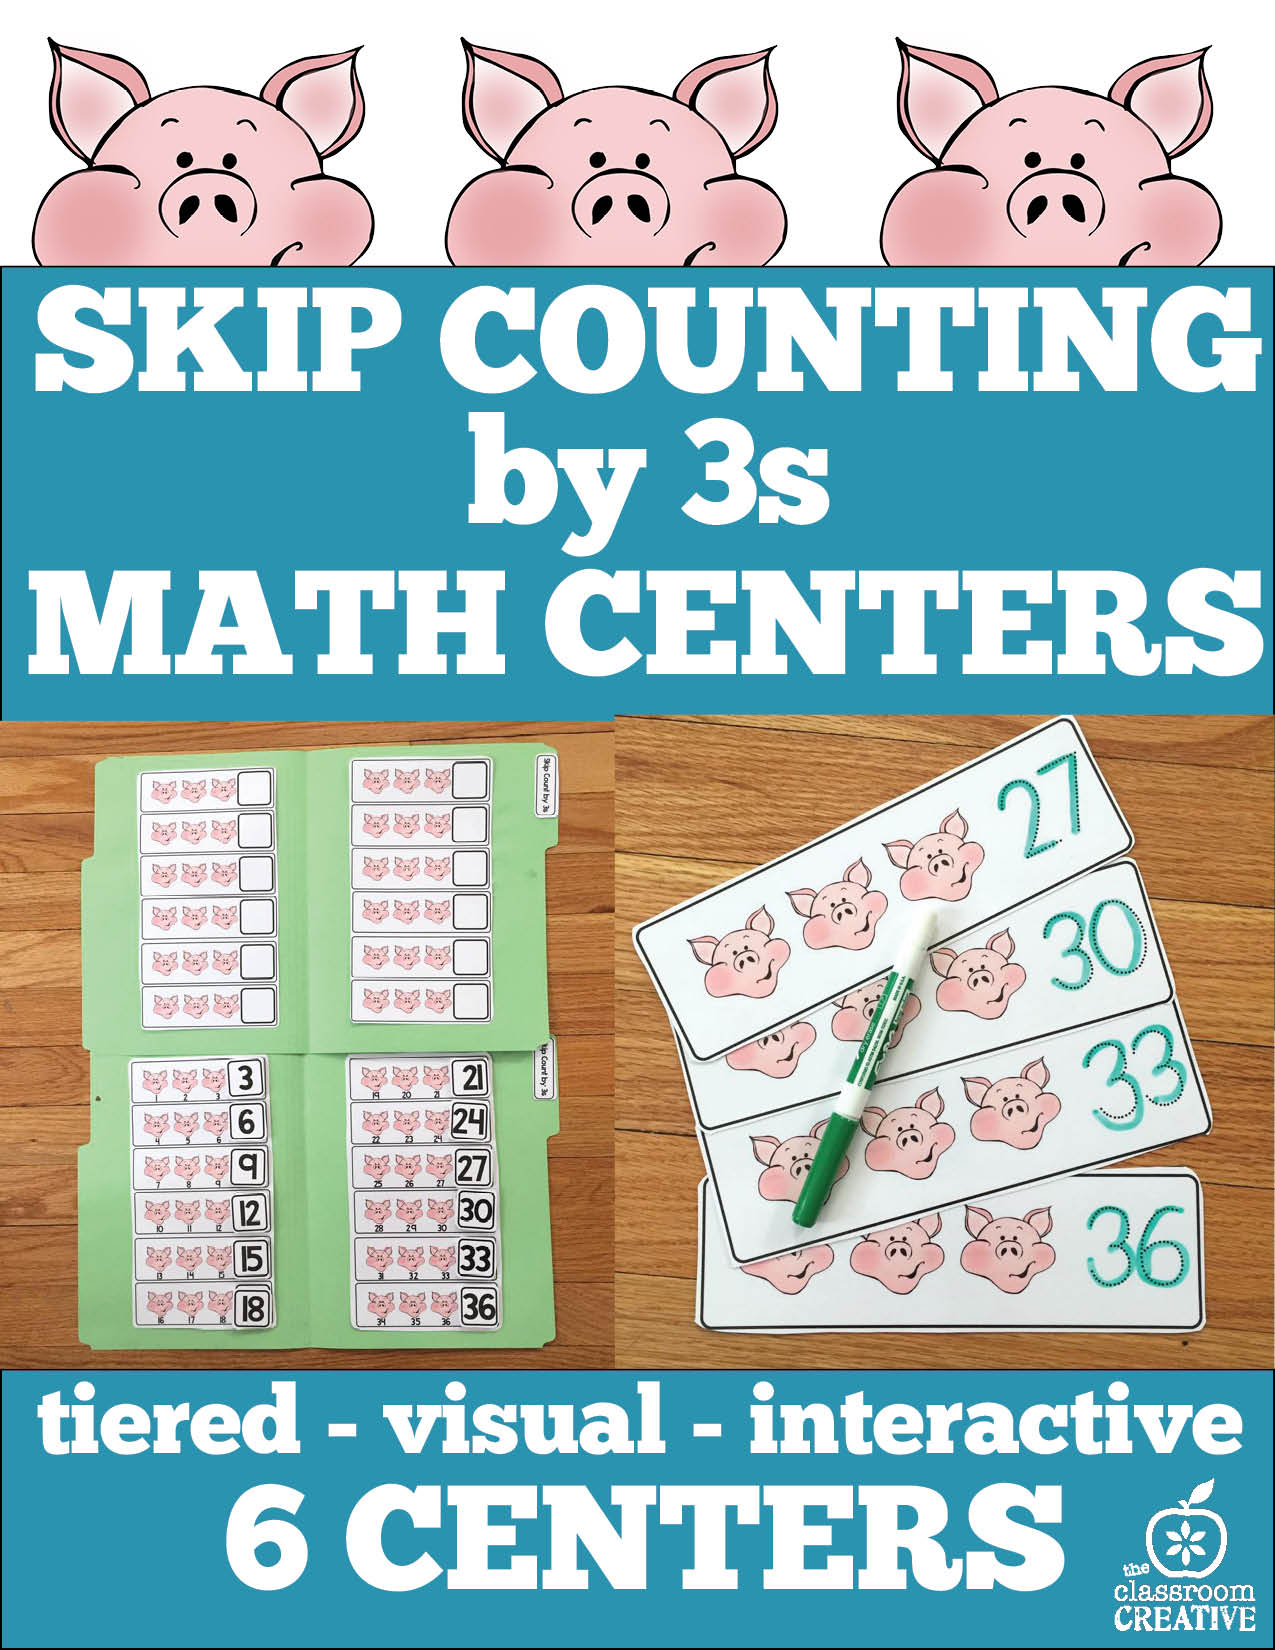 Ideas for Teaching Skip Counting